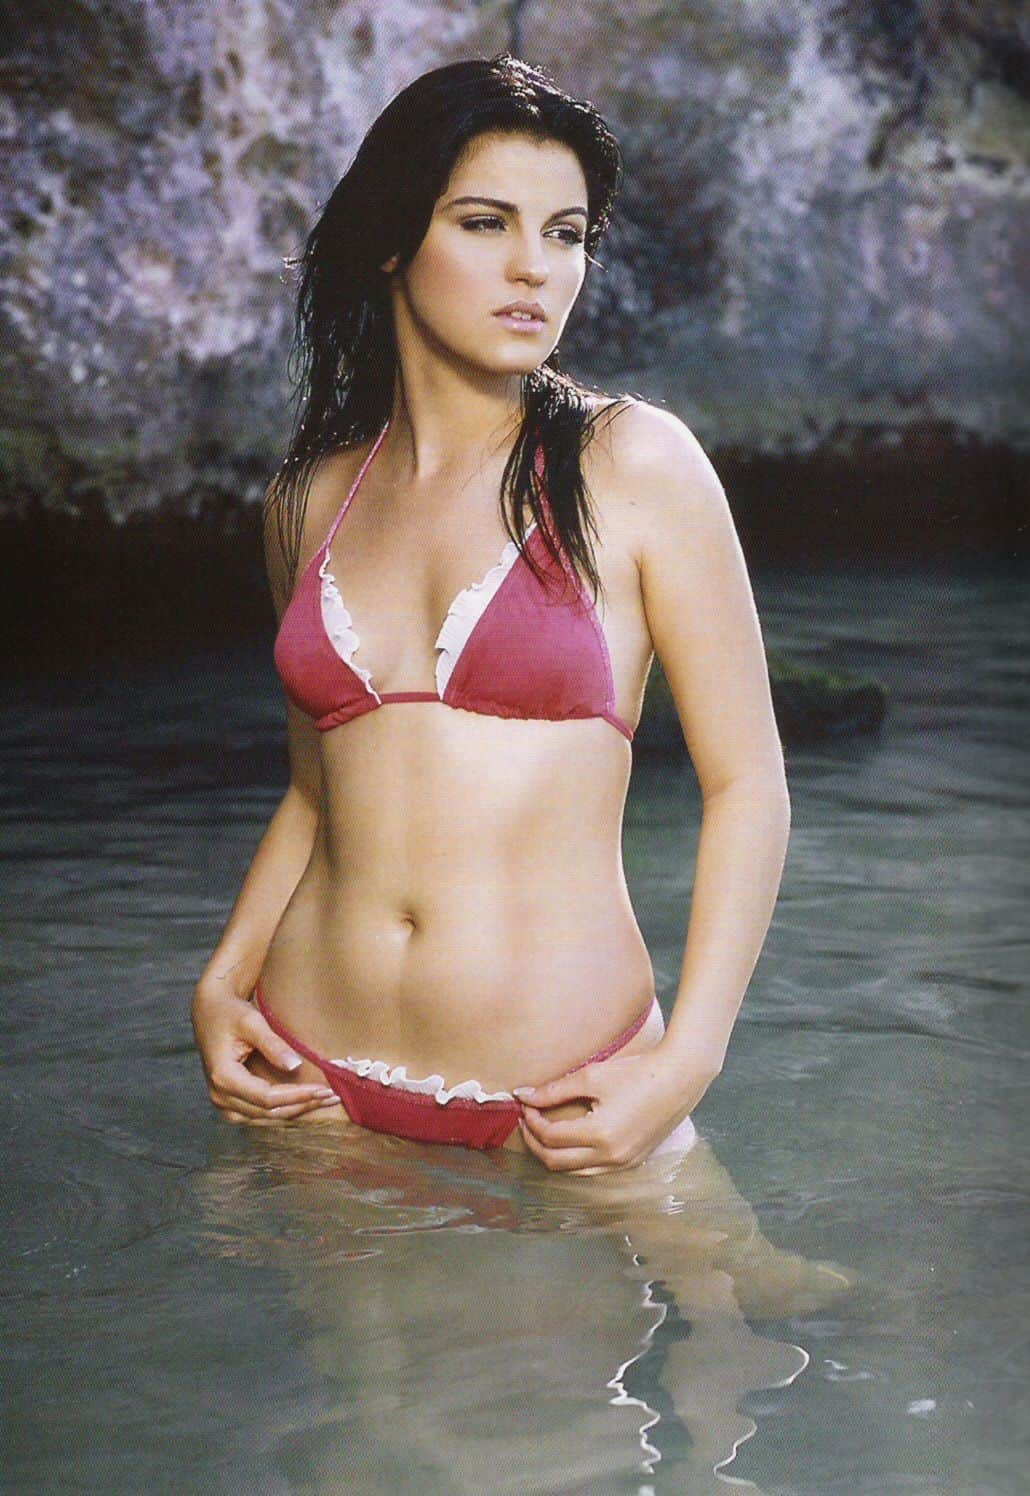 Maite Perroni at the water